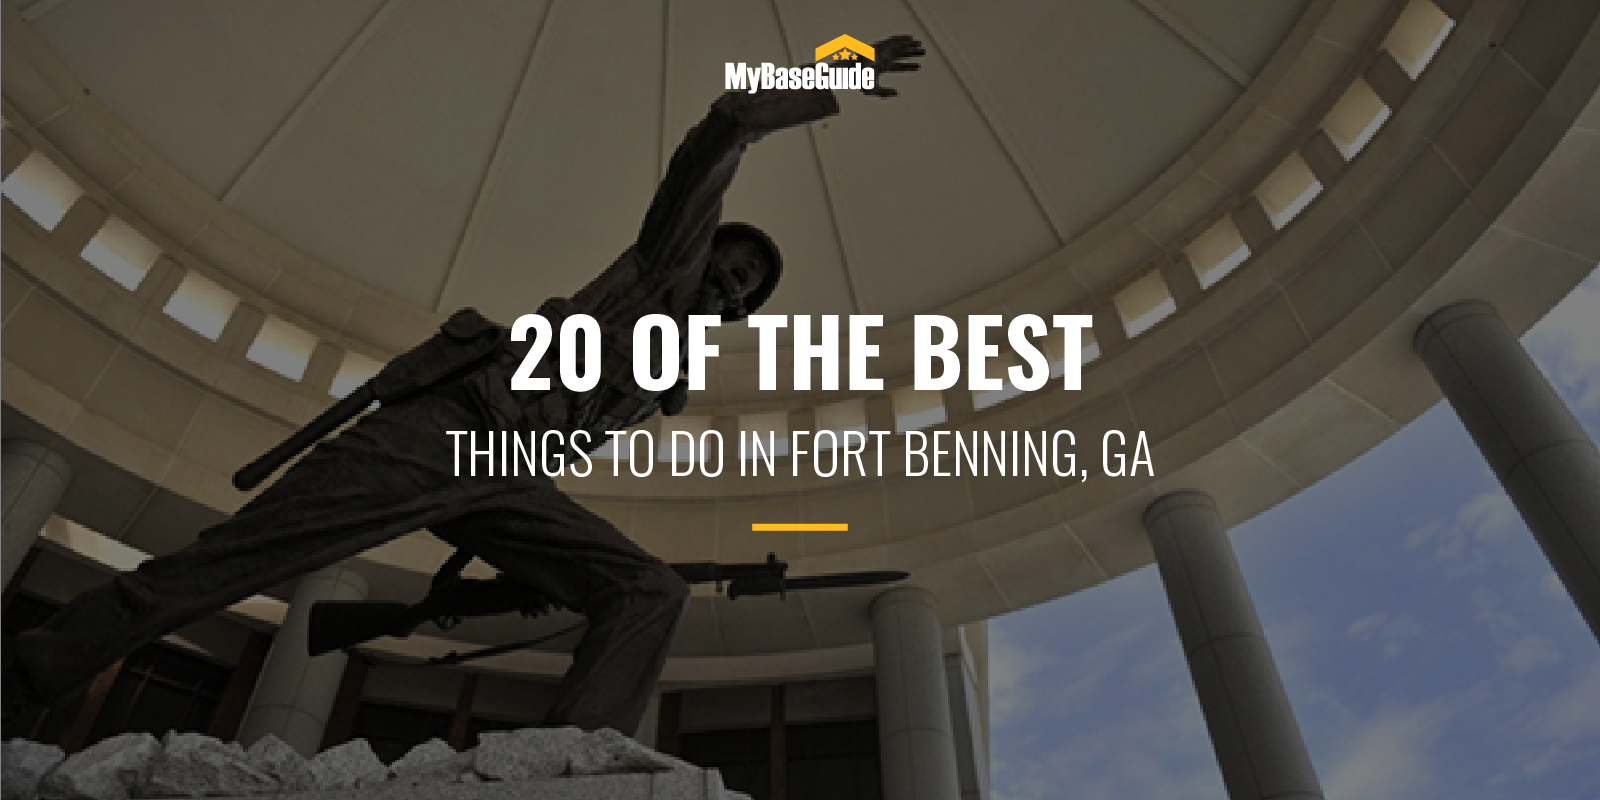 Best Things to Do Fort Benning